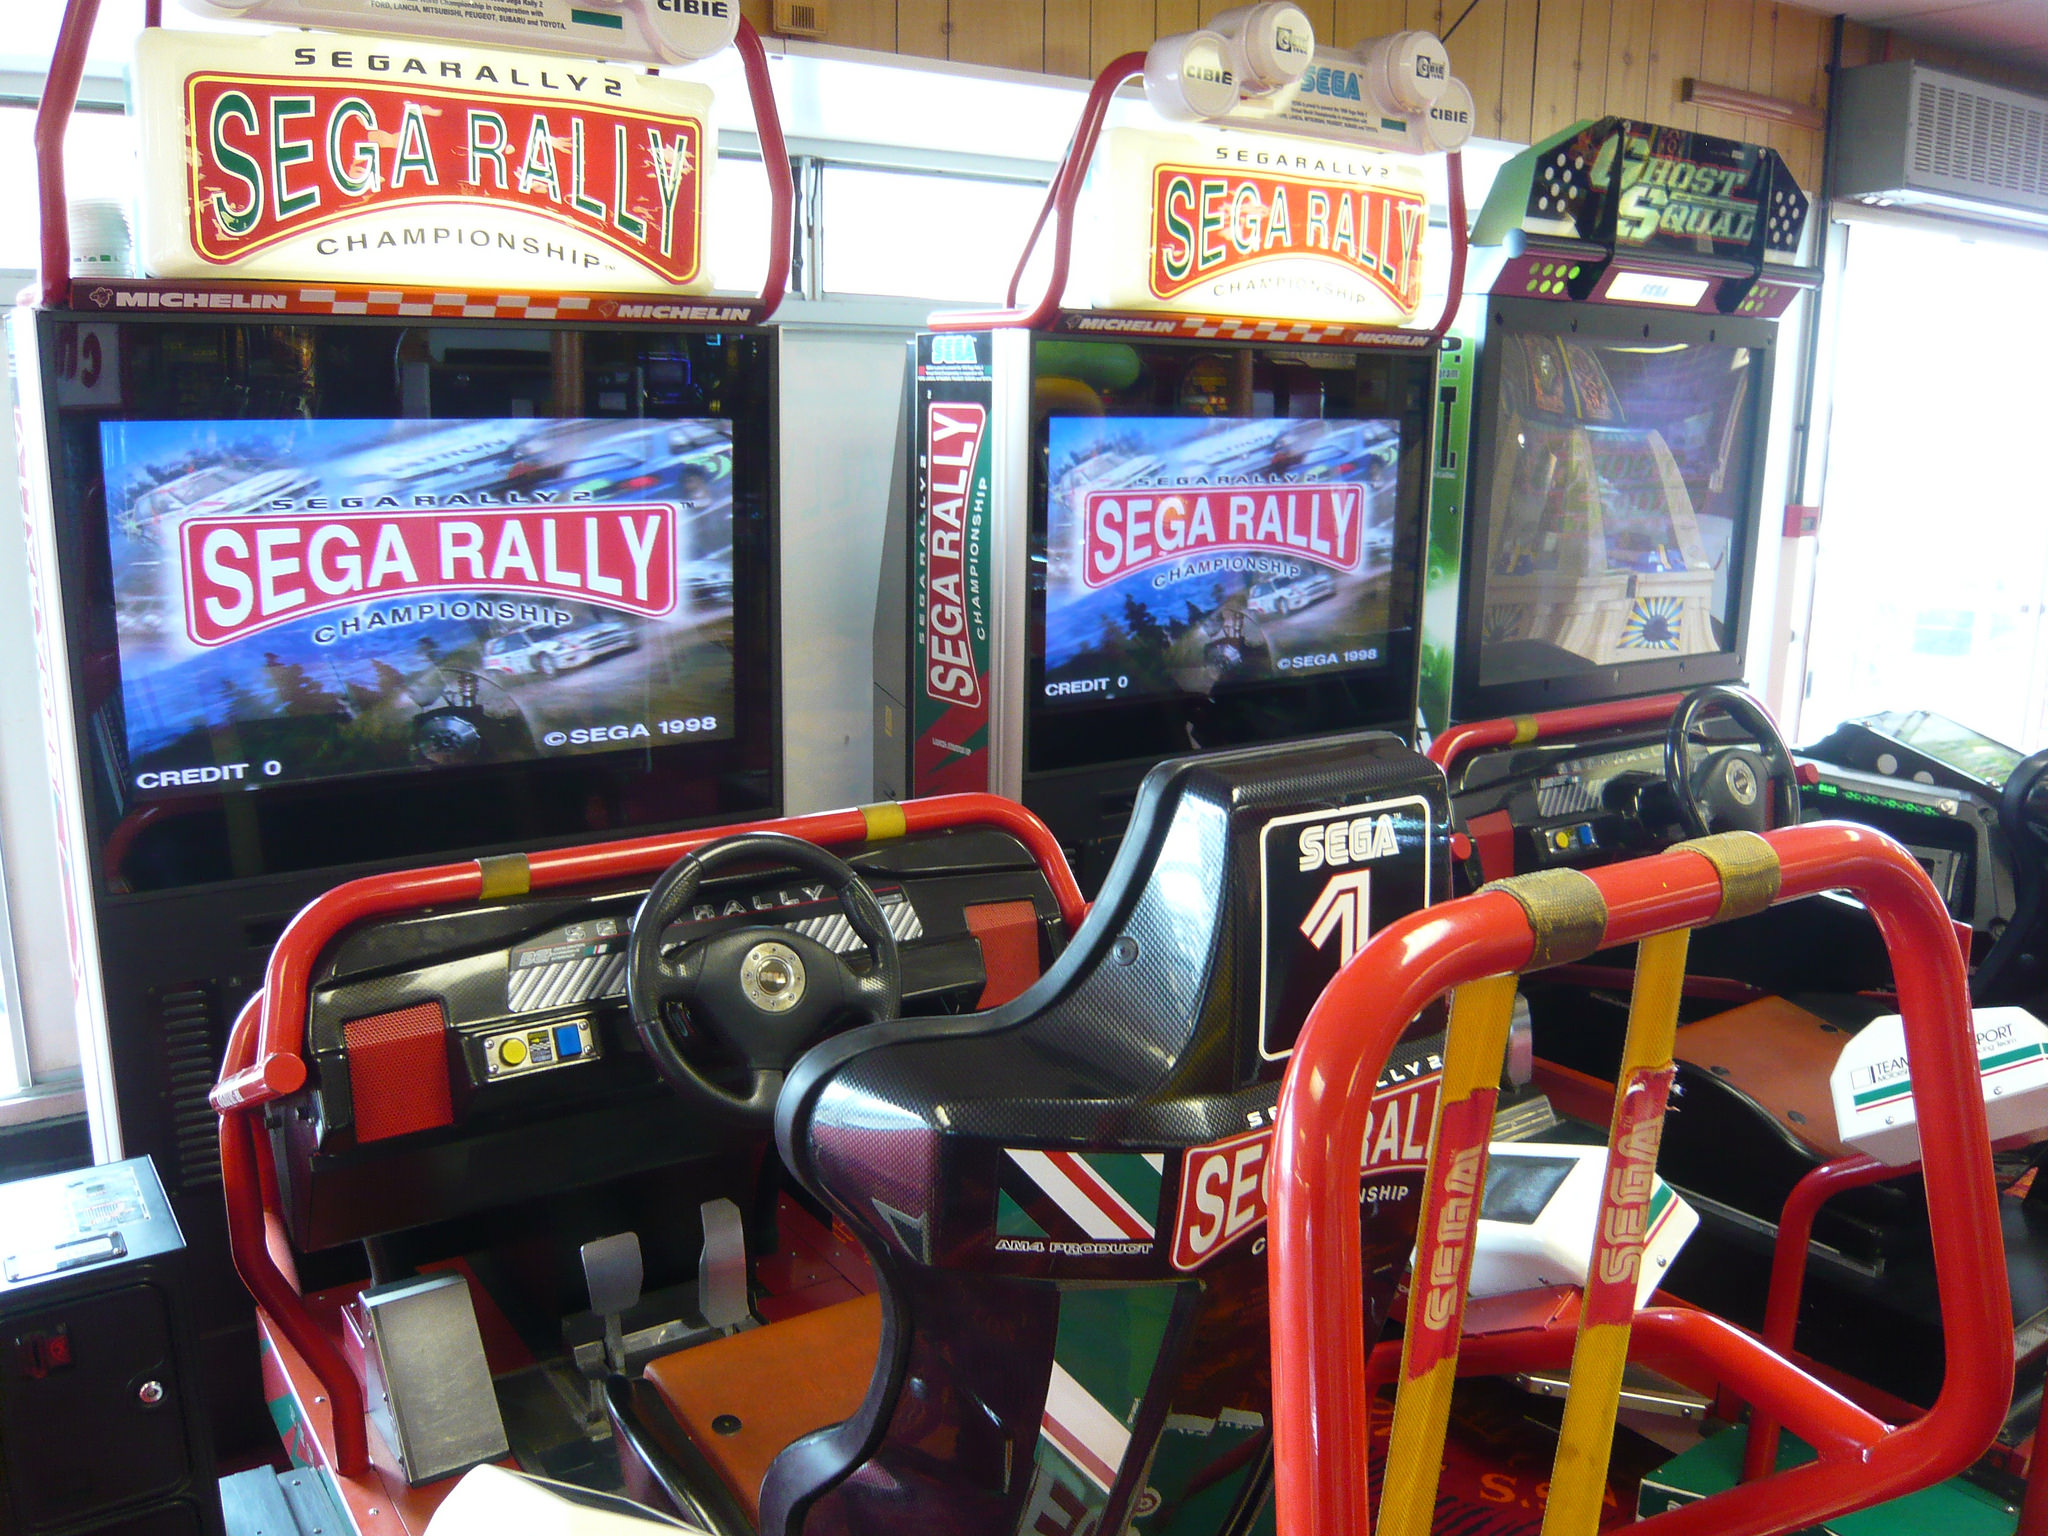 UK ARCADES is creating VIDEO GAMES, EMULATION, UK ARCADE TOURS